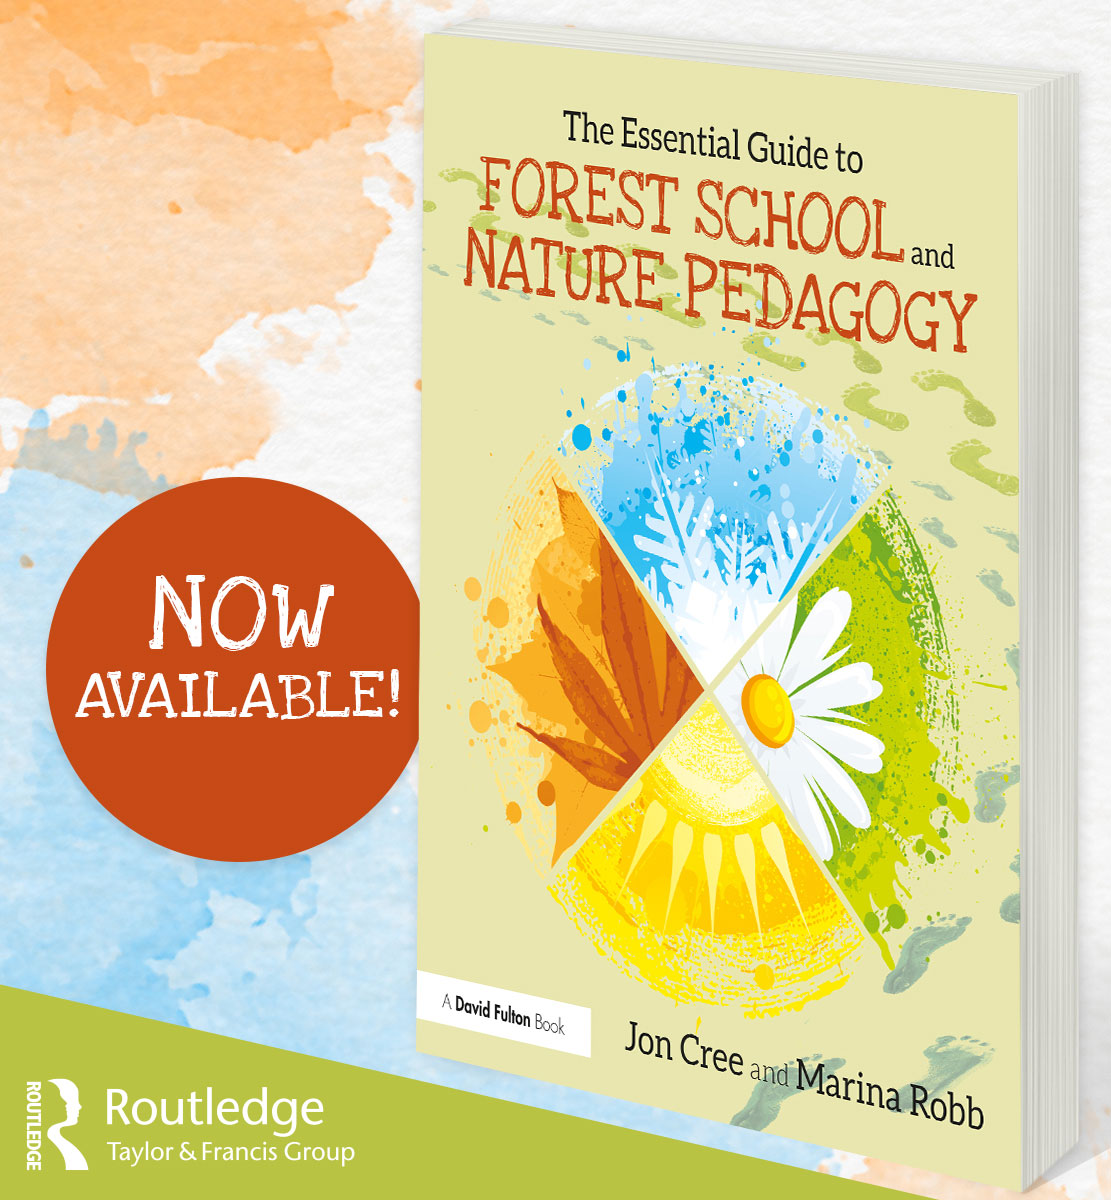 The Essential Guide to Forest School & Nature Pedagogy